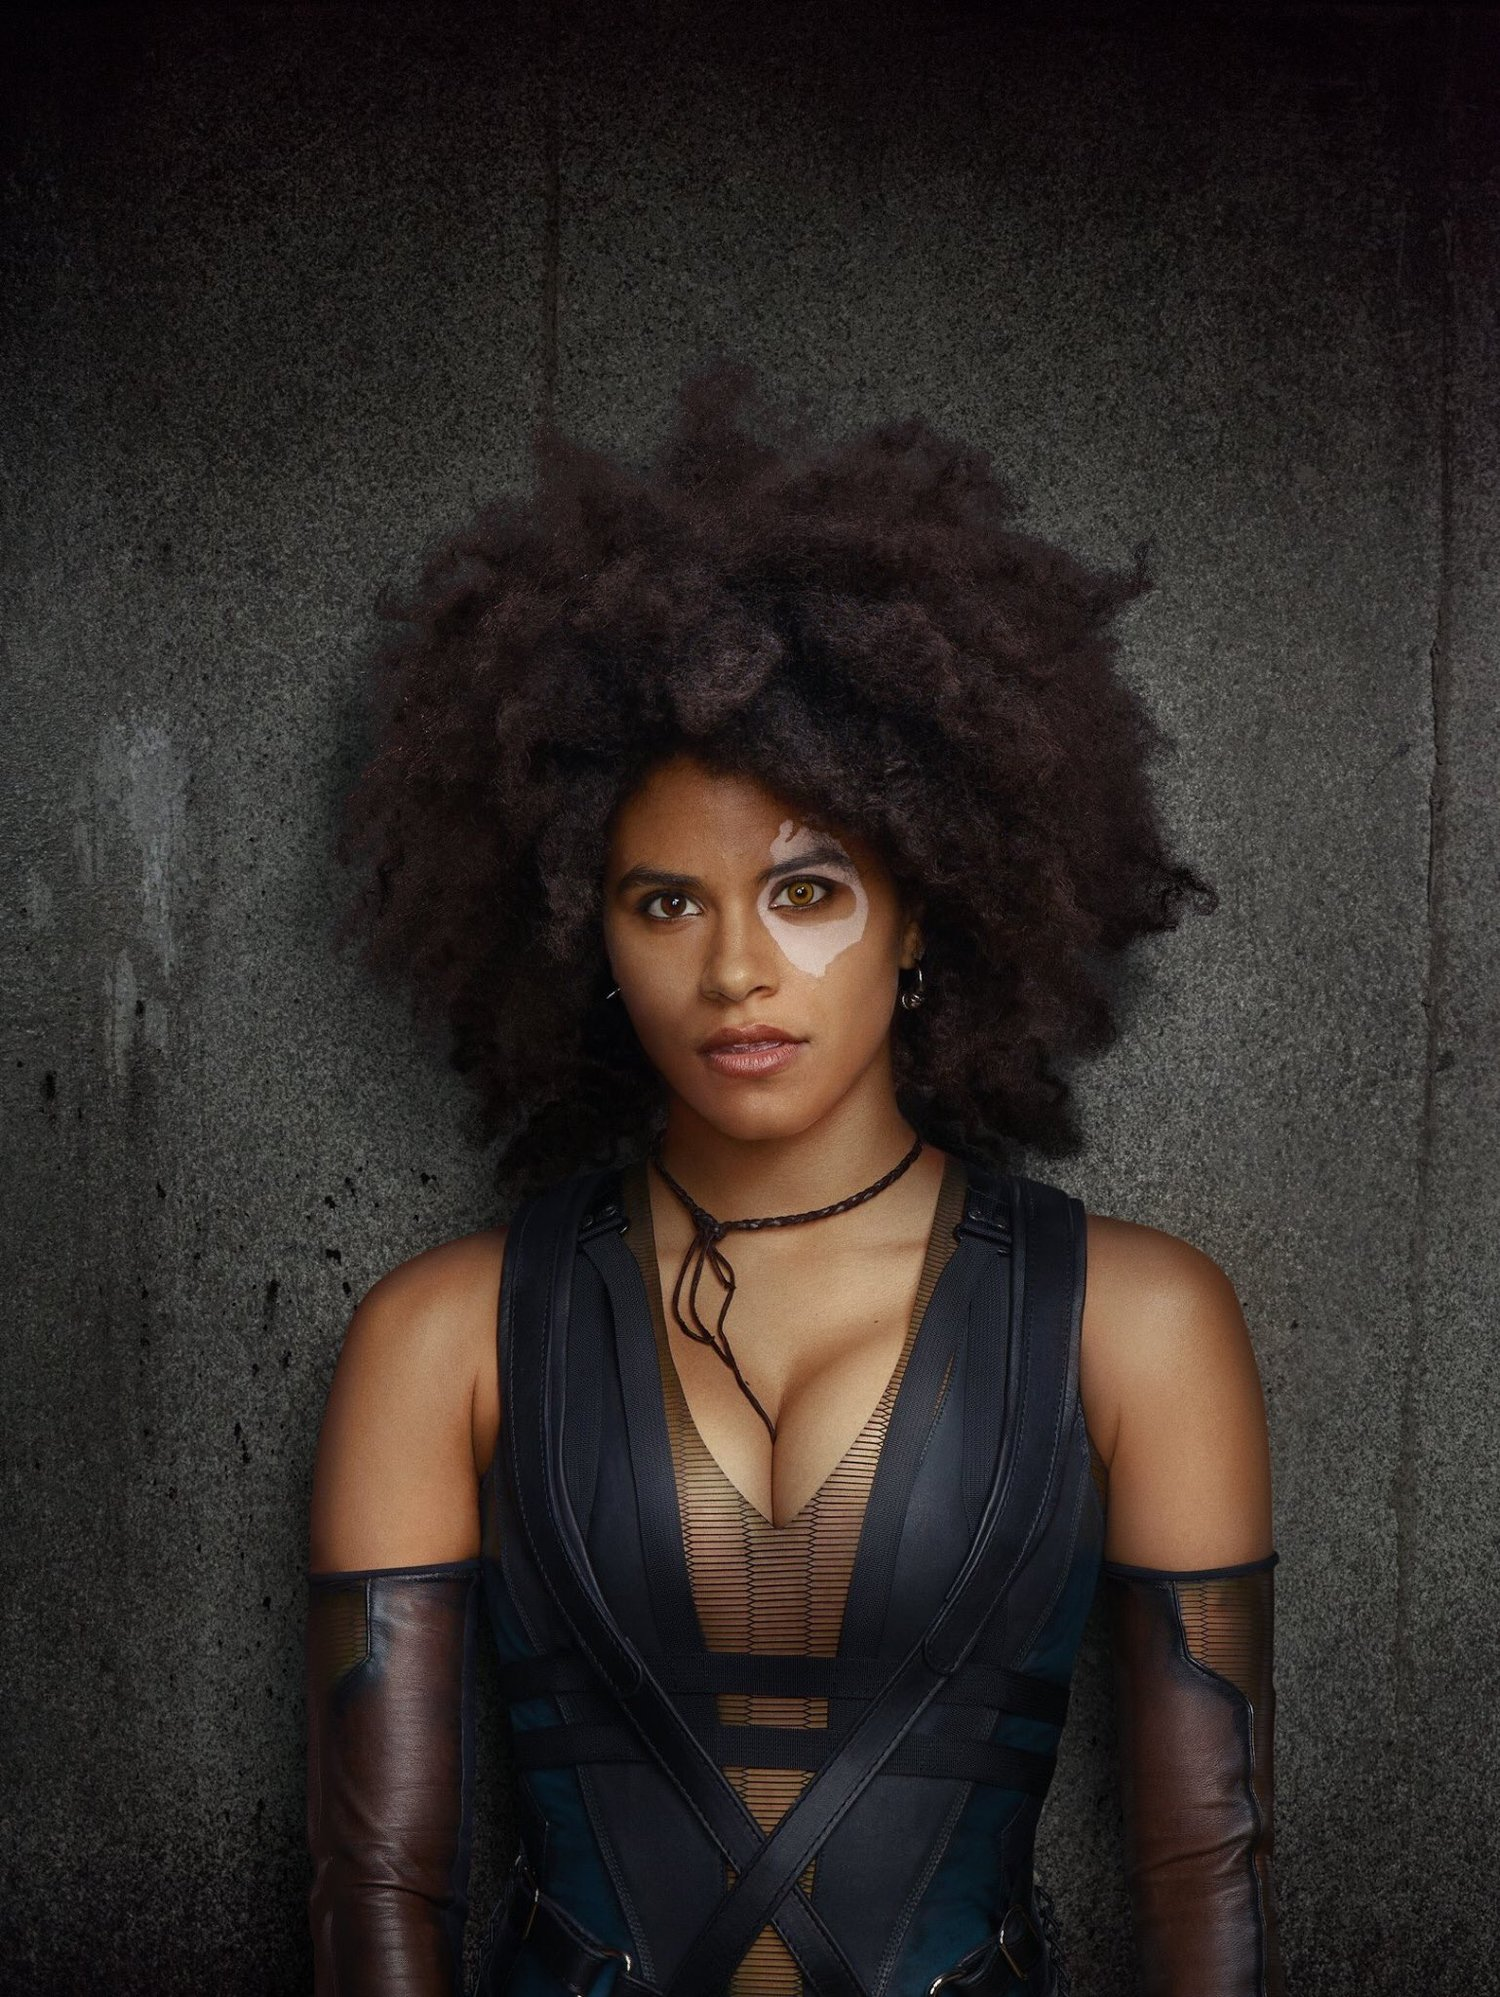 New Photo Of Zazie Beetz As Domino In Deadpool 2 Gives Us A Closer Look Geektyrant